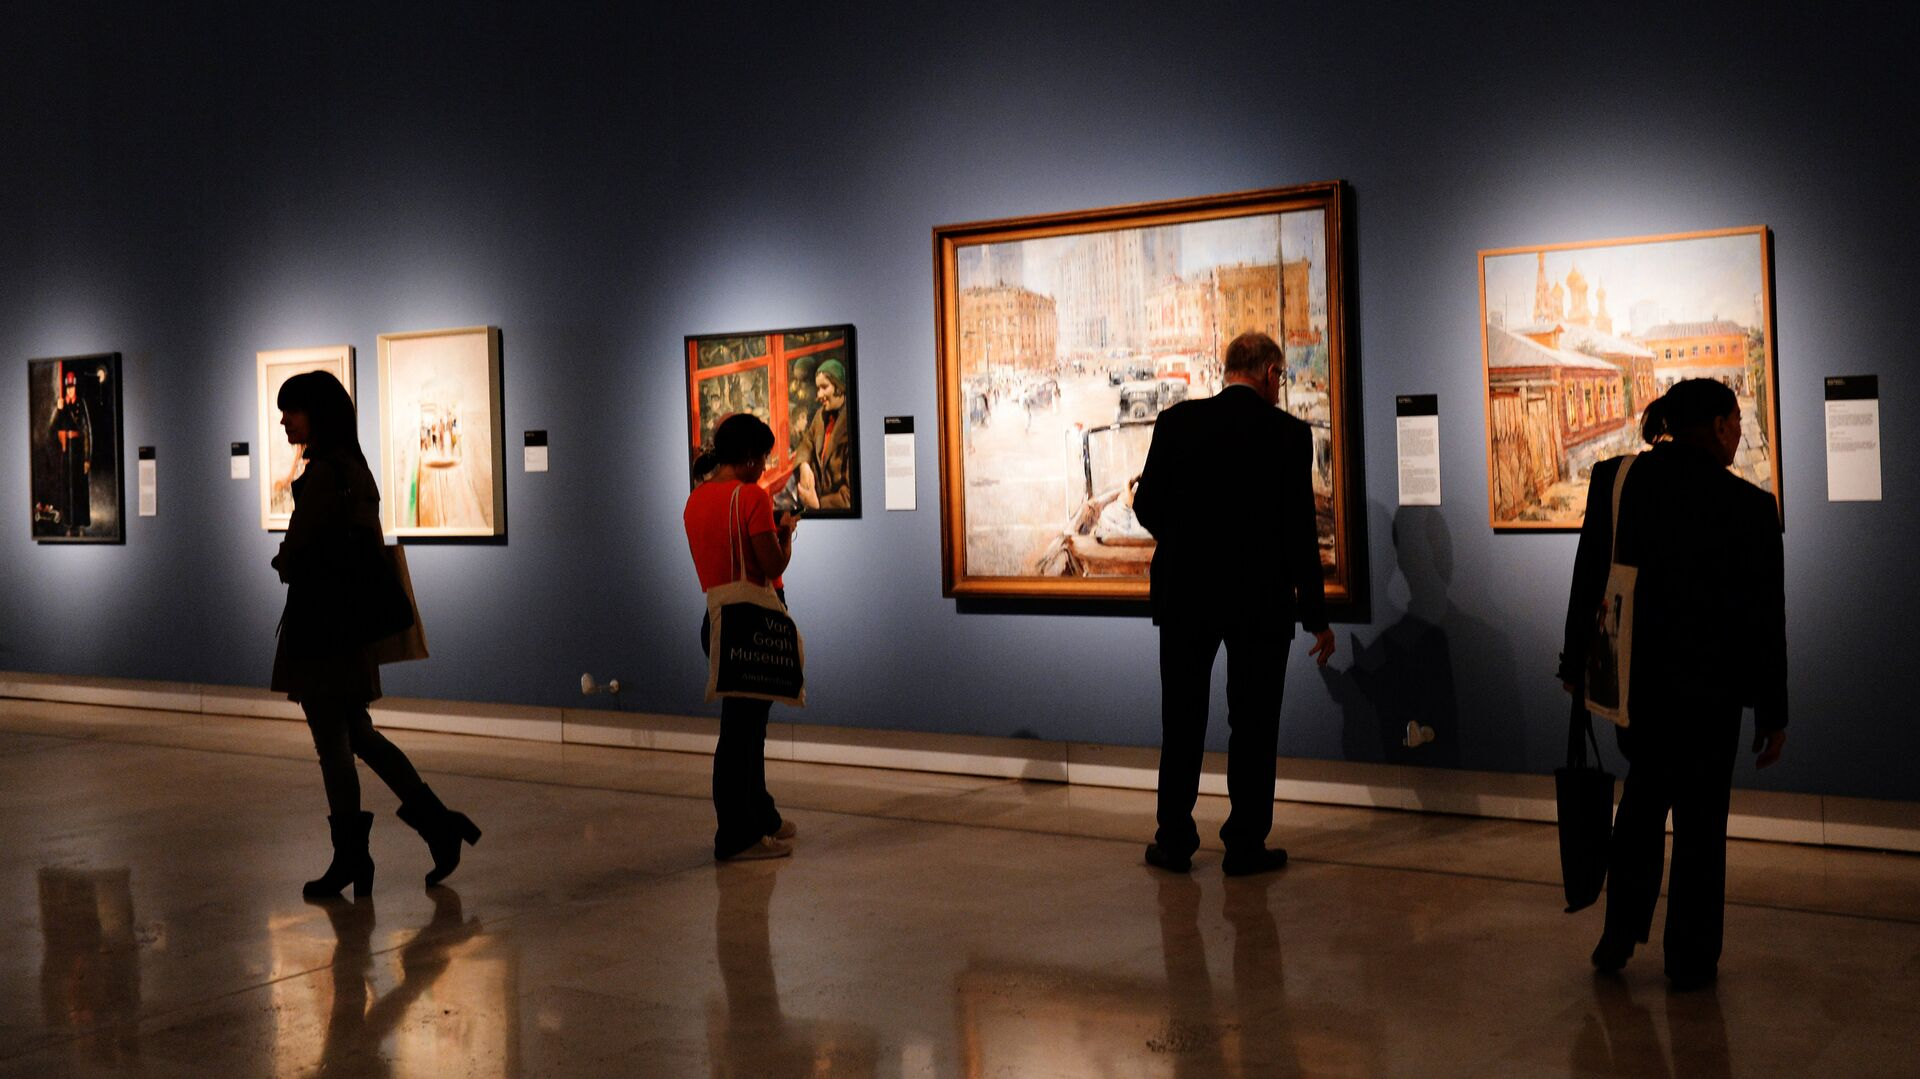 Visitors at the Palazzo delle Esposizioni in Rome attend an exhibition of paintings from the collection of the Institute for Russian Realist Art (IRRA), state-owned museums and private collections called 'Russia on the Road (1920-1990).' Center: The New Moscow by Yury Pimenov, courtesy of the State Tretyakov Gallery - Sputnik International, 1920, 12.10.2021